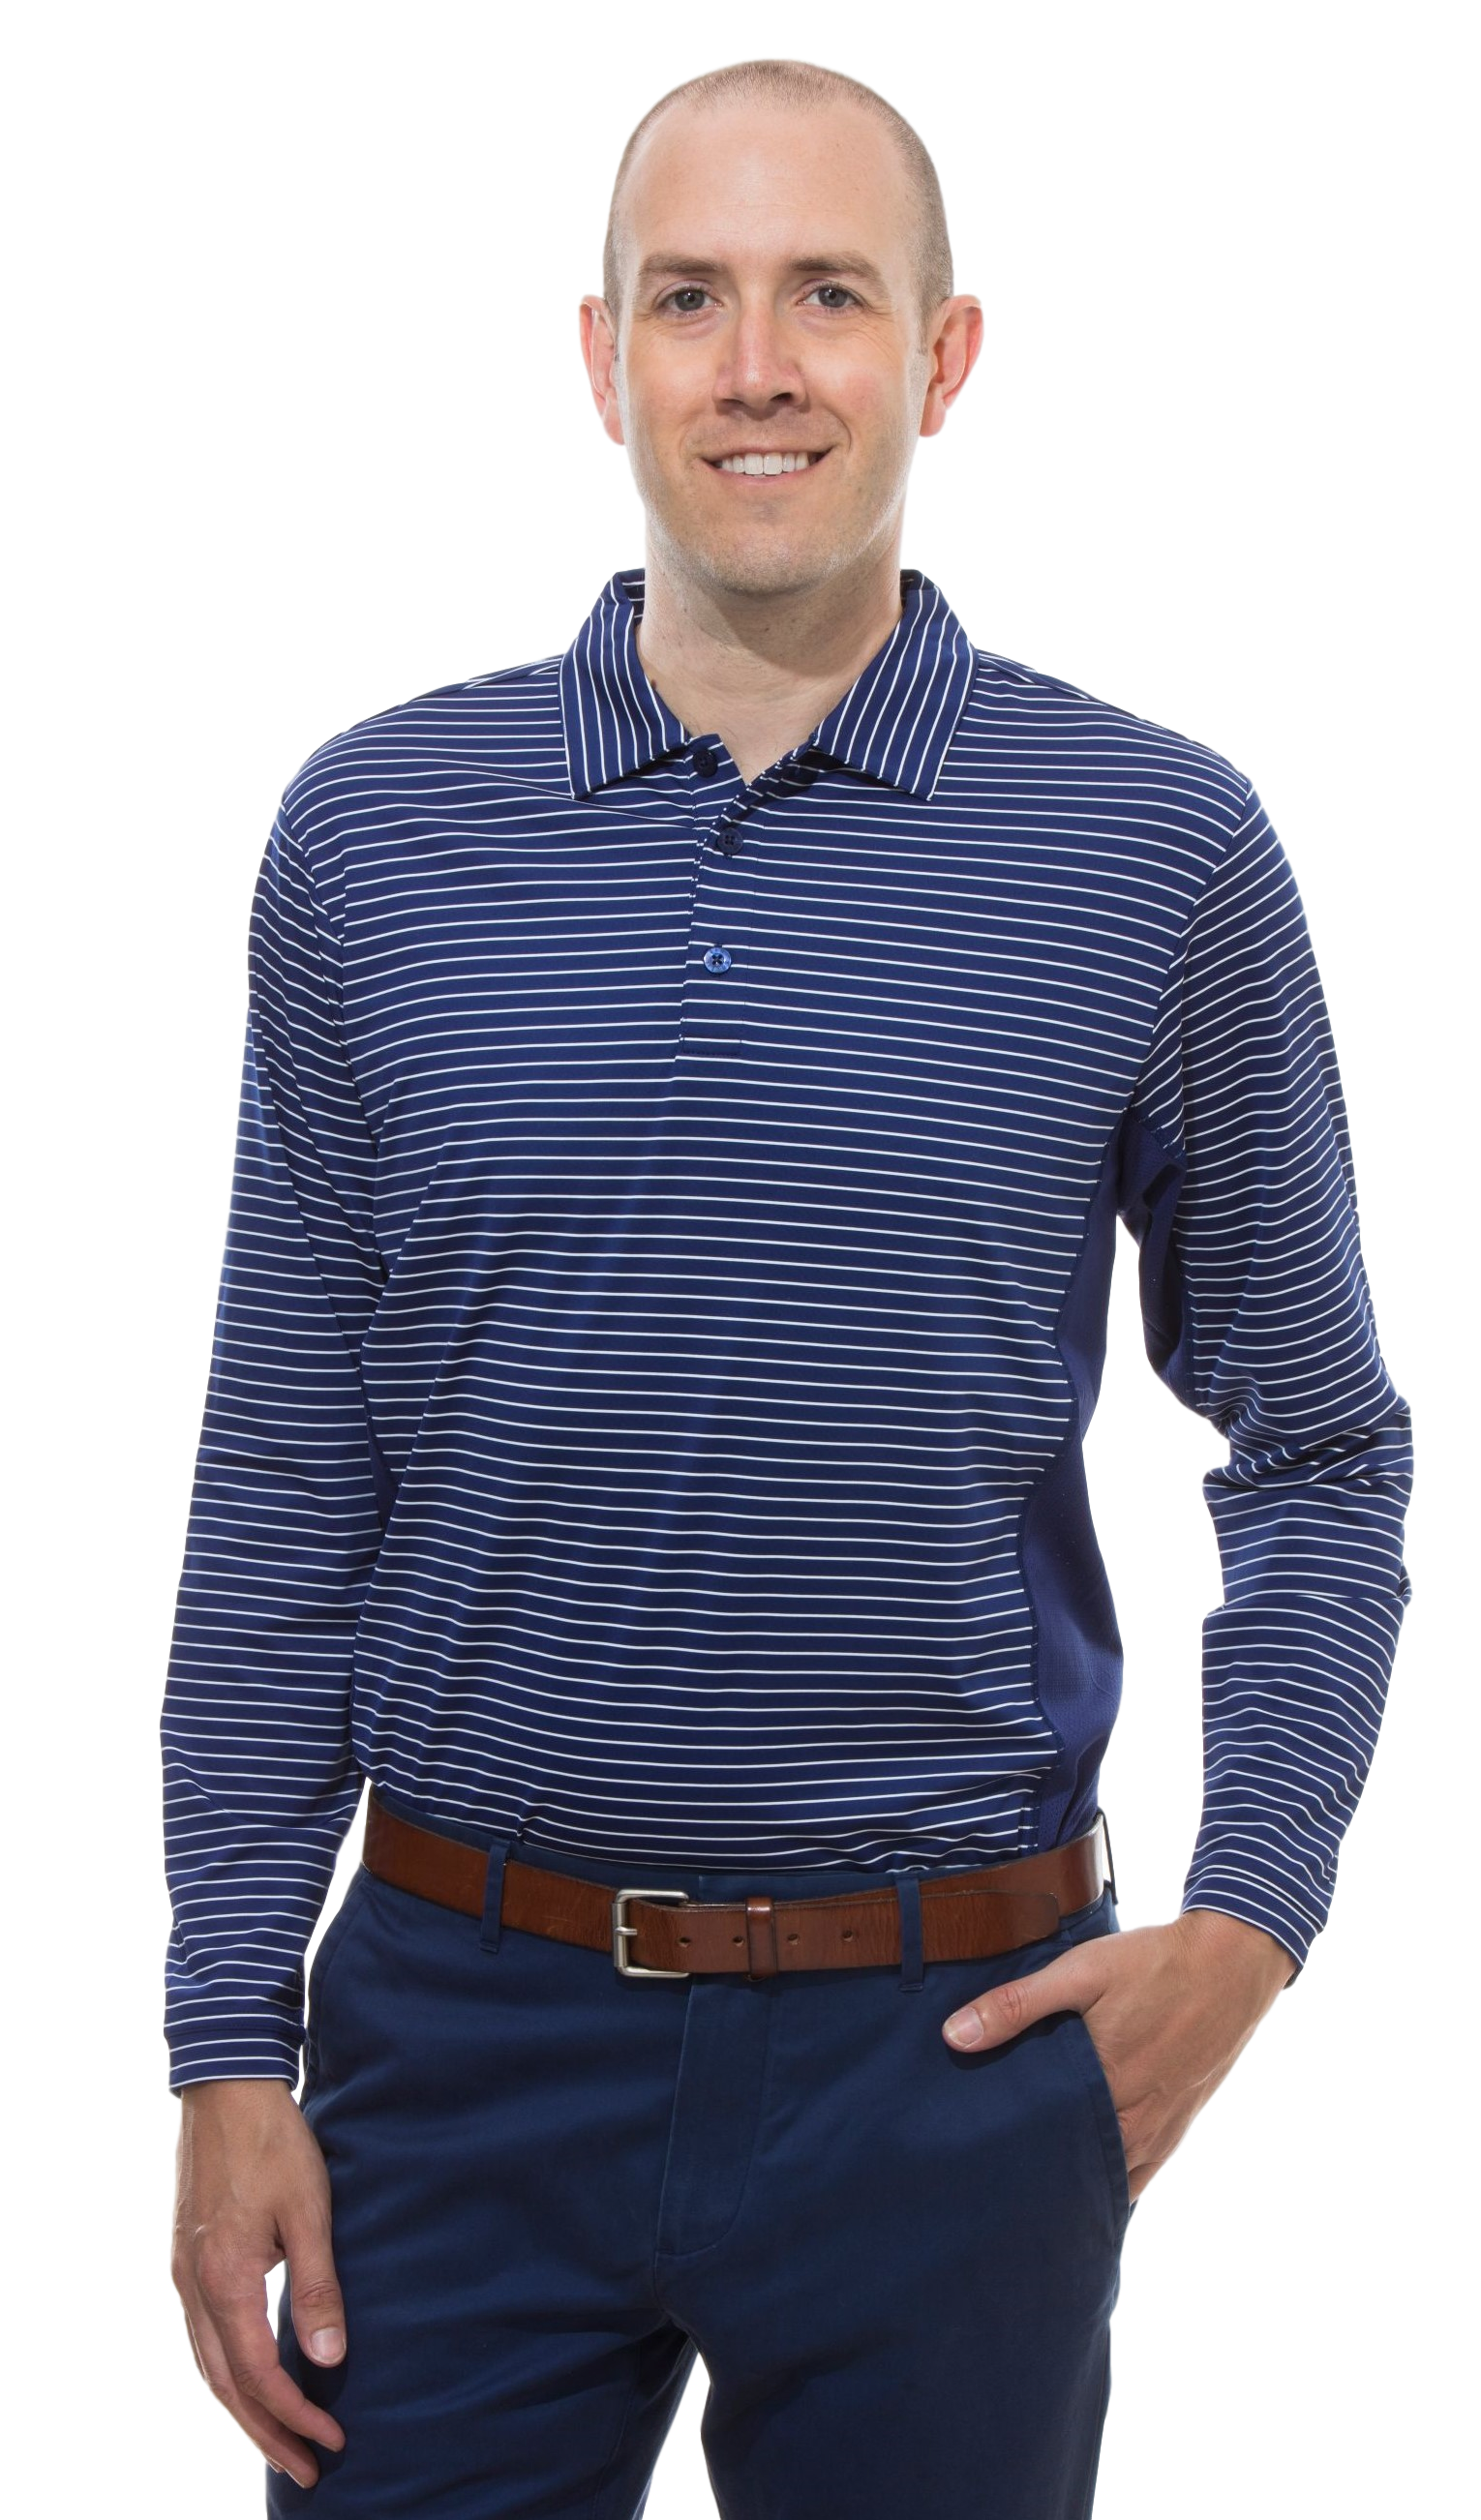 900824S SanSoleil Men'S Solcool Long Sleeve Stripe Button Polo- Submarine Blue and White Stripe